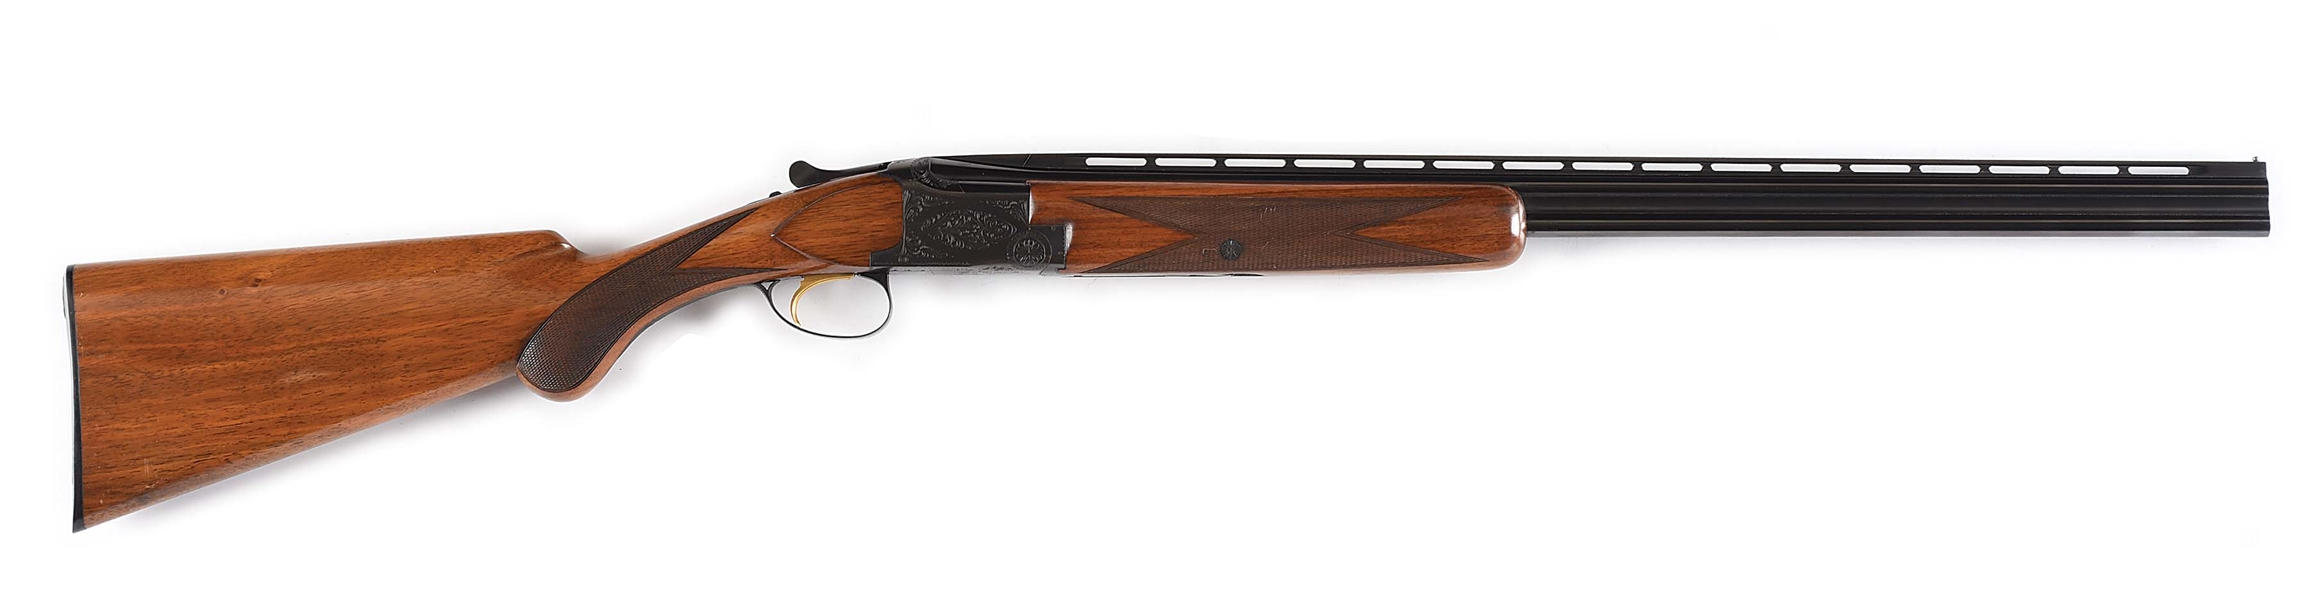 (C) SCARCE EARLY 60S .410 BROWNING SUPERPOSED SHOTGUN WITH EXTRA BARRELS AND CASE.